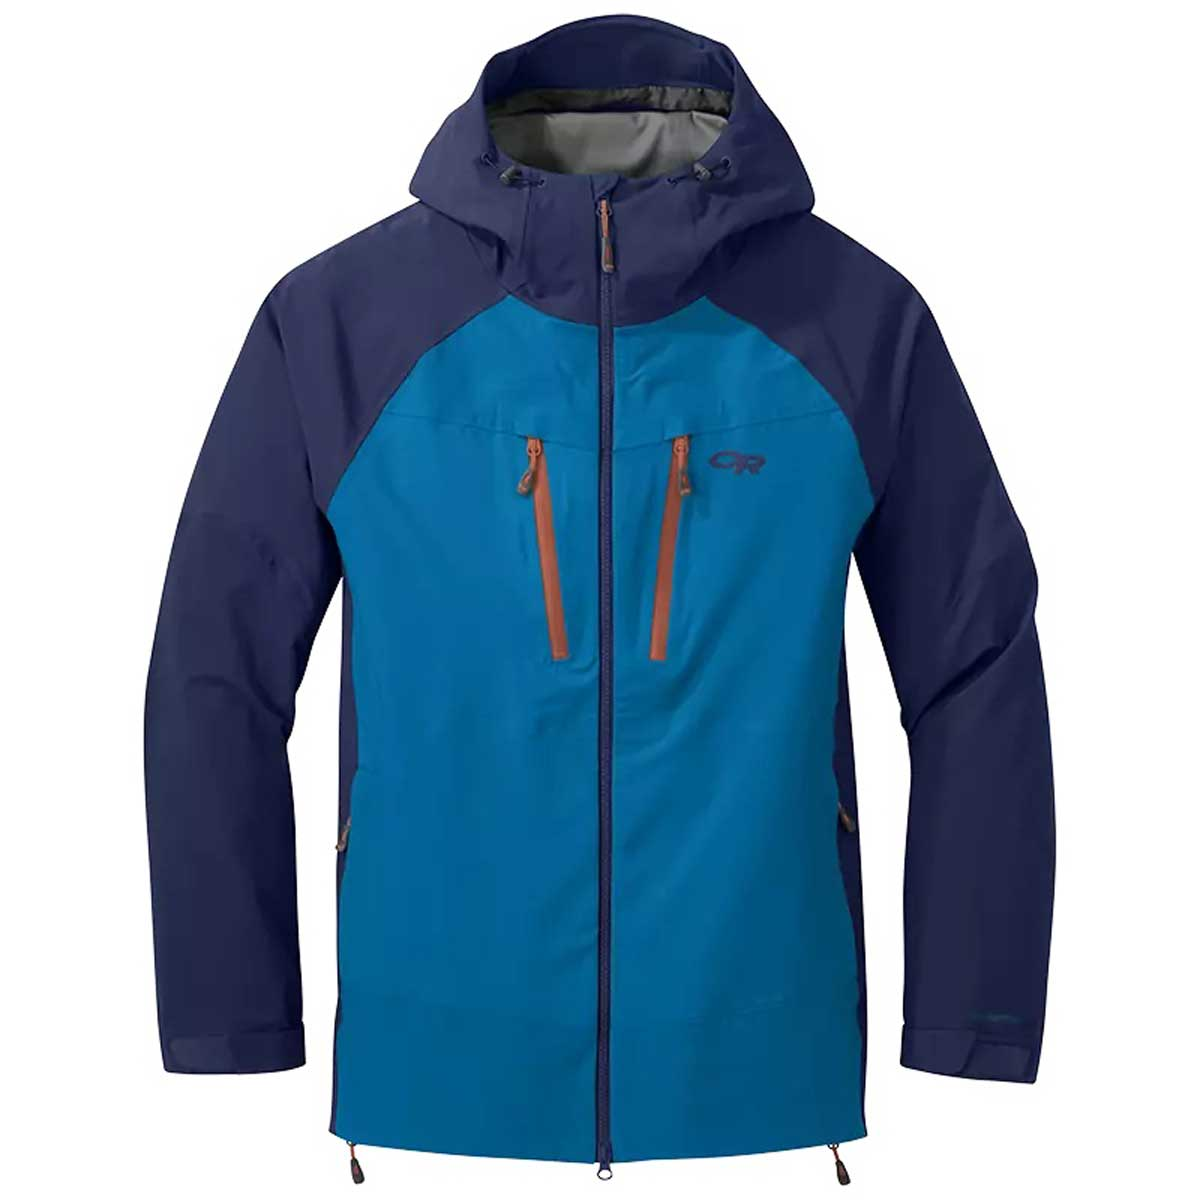 Outdoor Research Men's Skyward II Jacket in Cascade and Twighlight